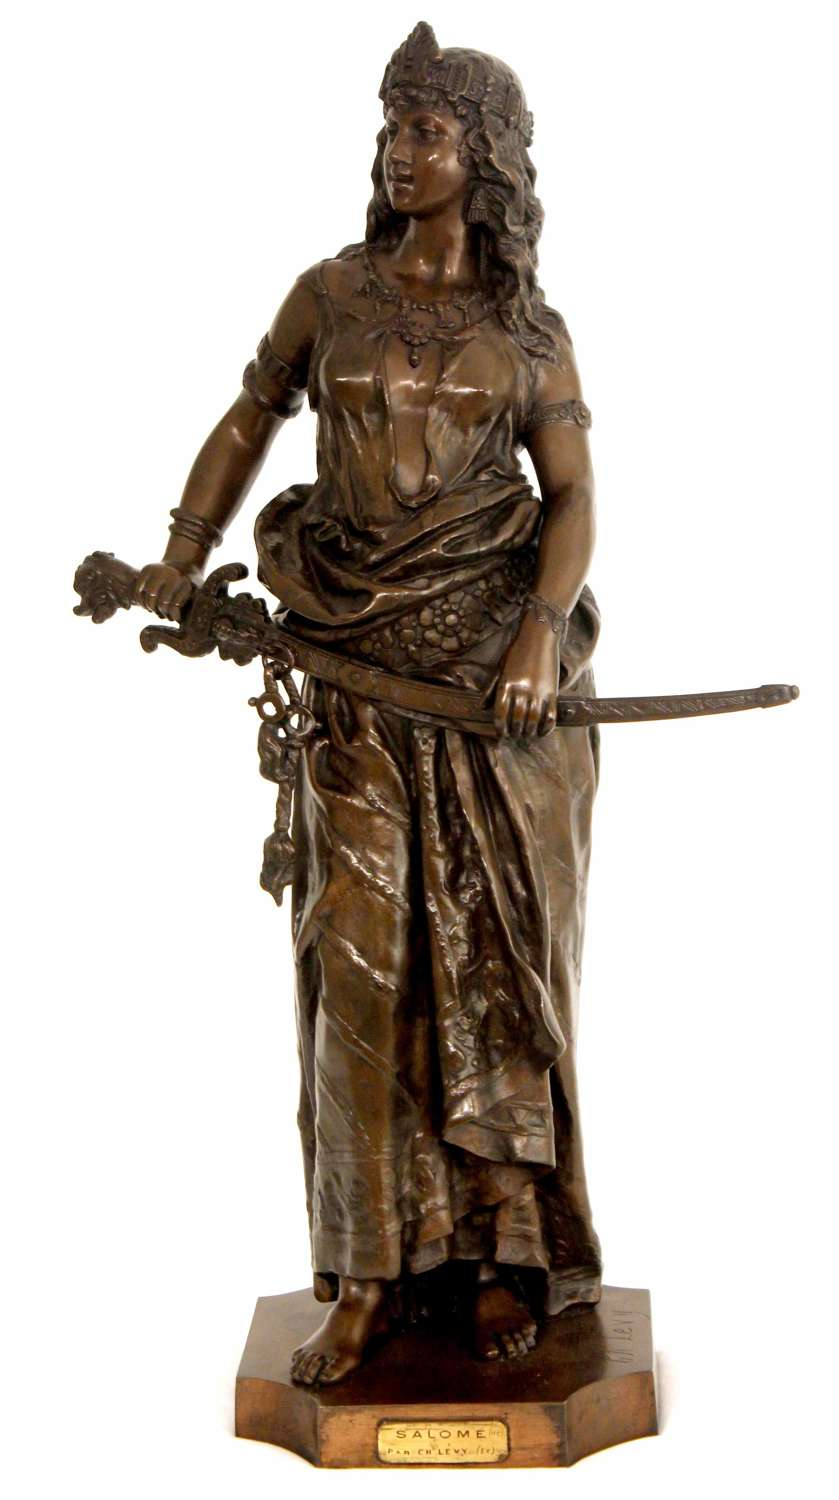 Charles-Octave Levy (1820-1899) Large 19th C. French Bronze